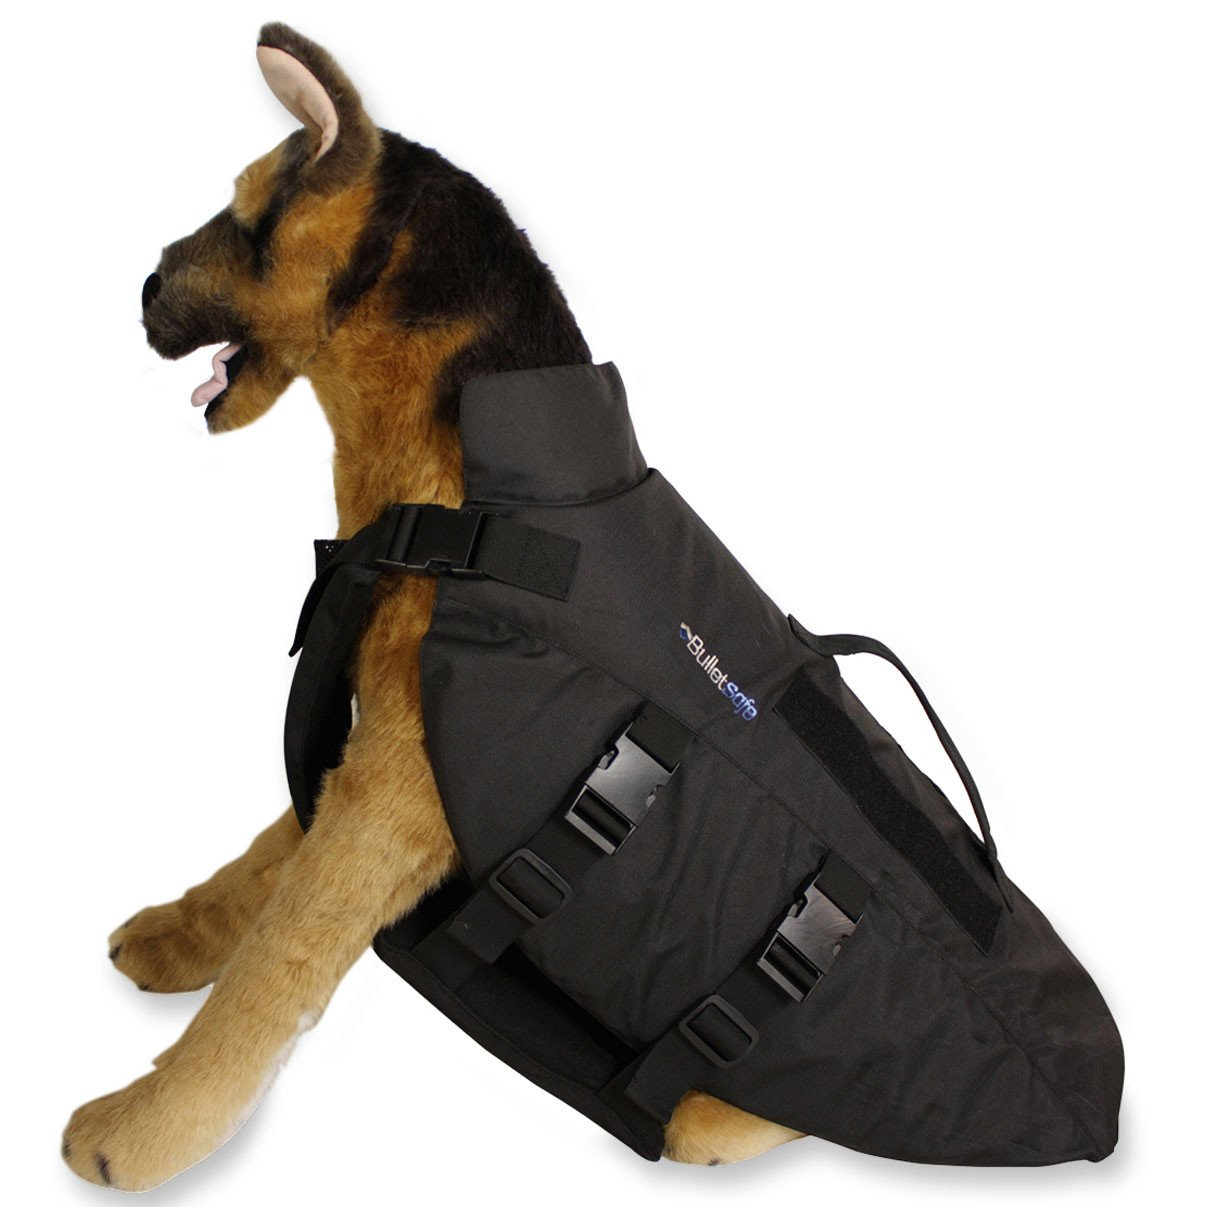 A dog figure wearing a bulletproof vest